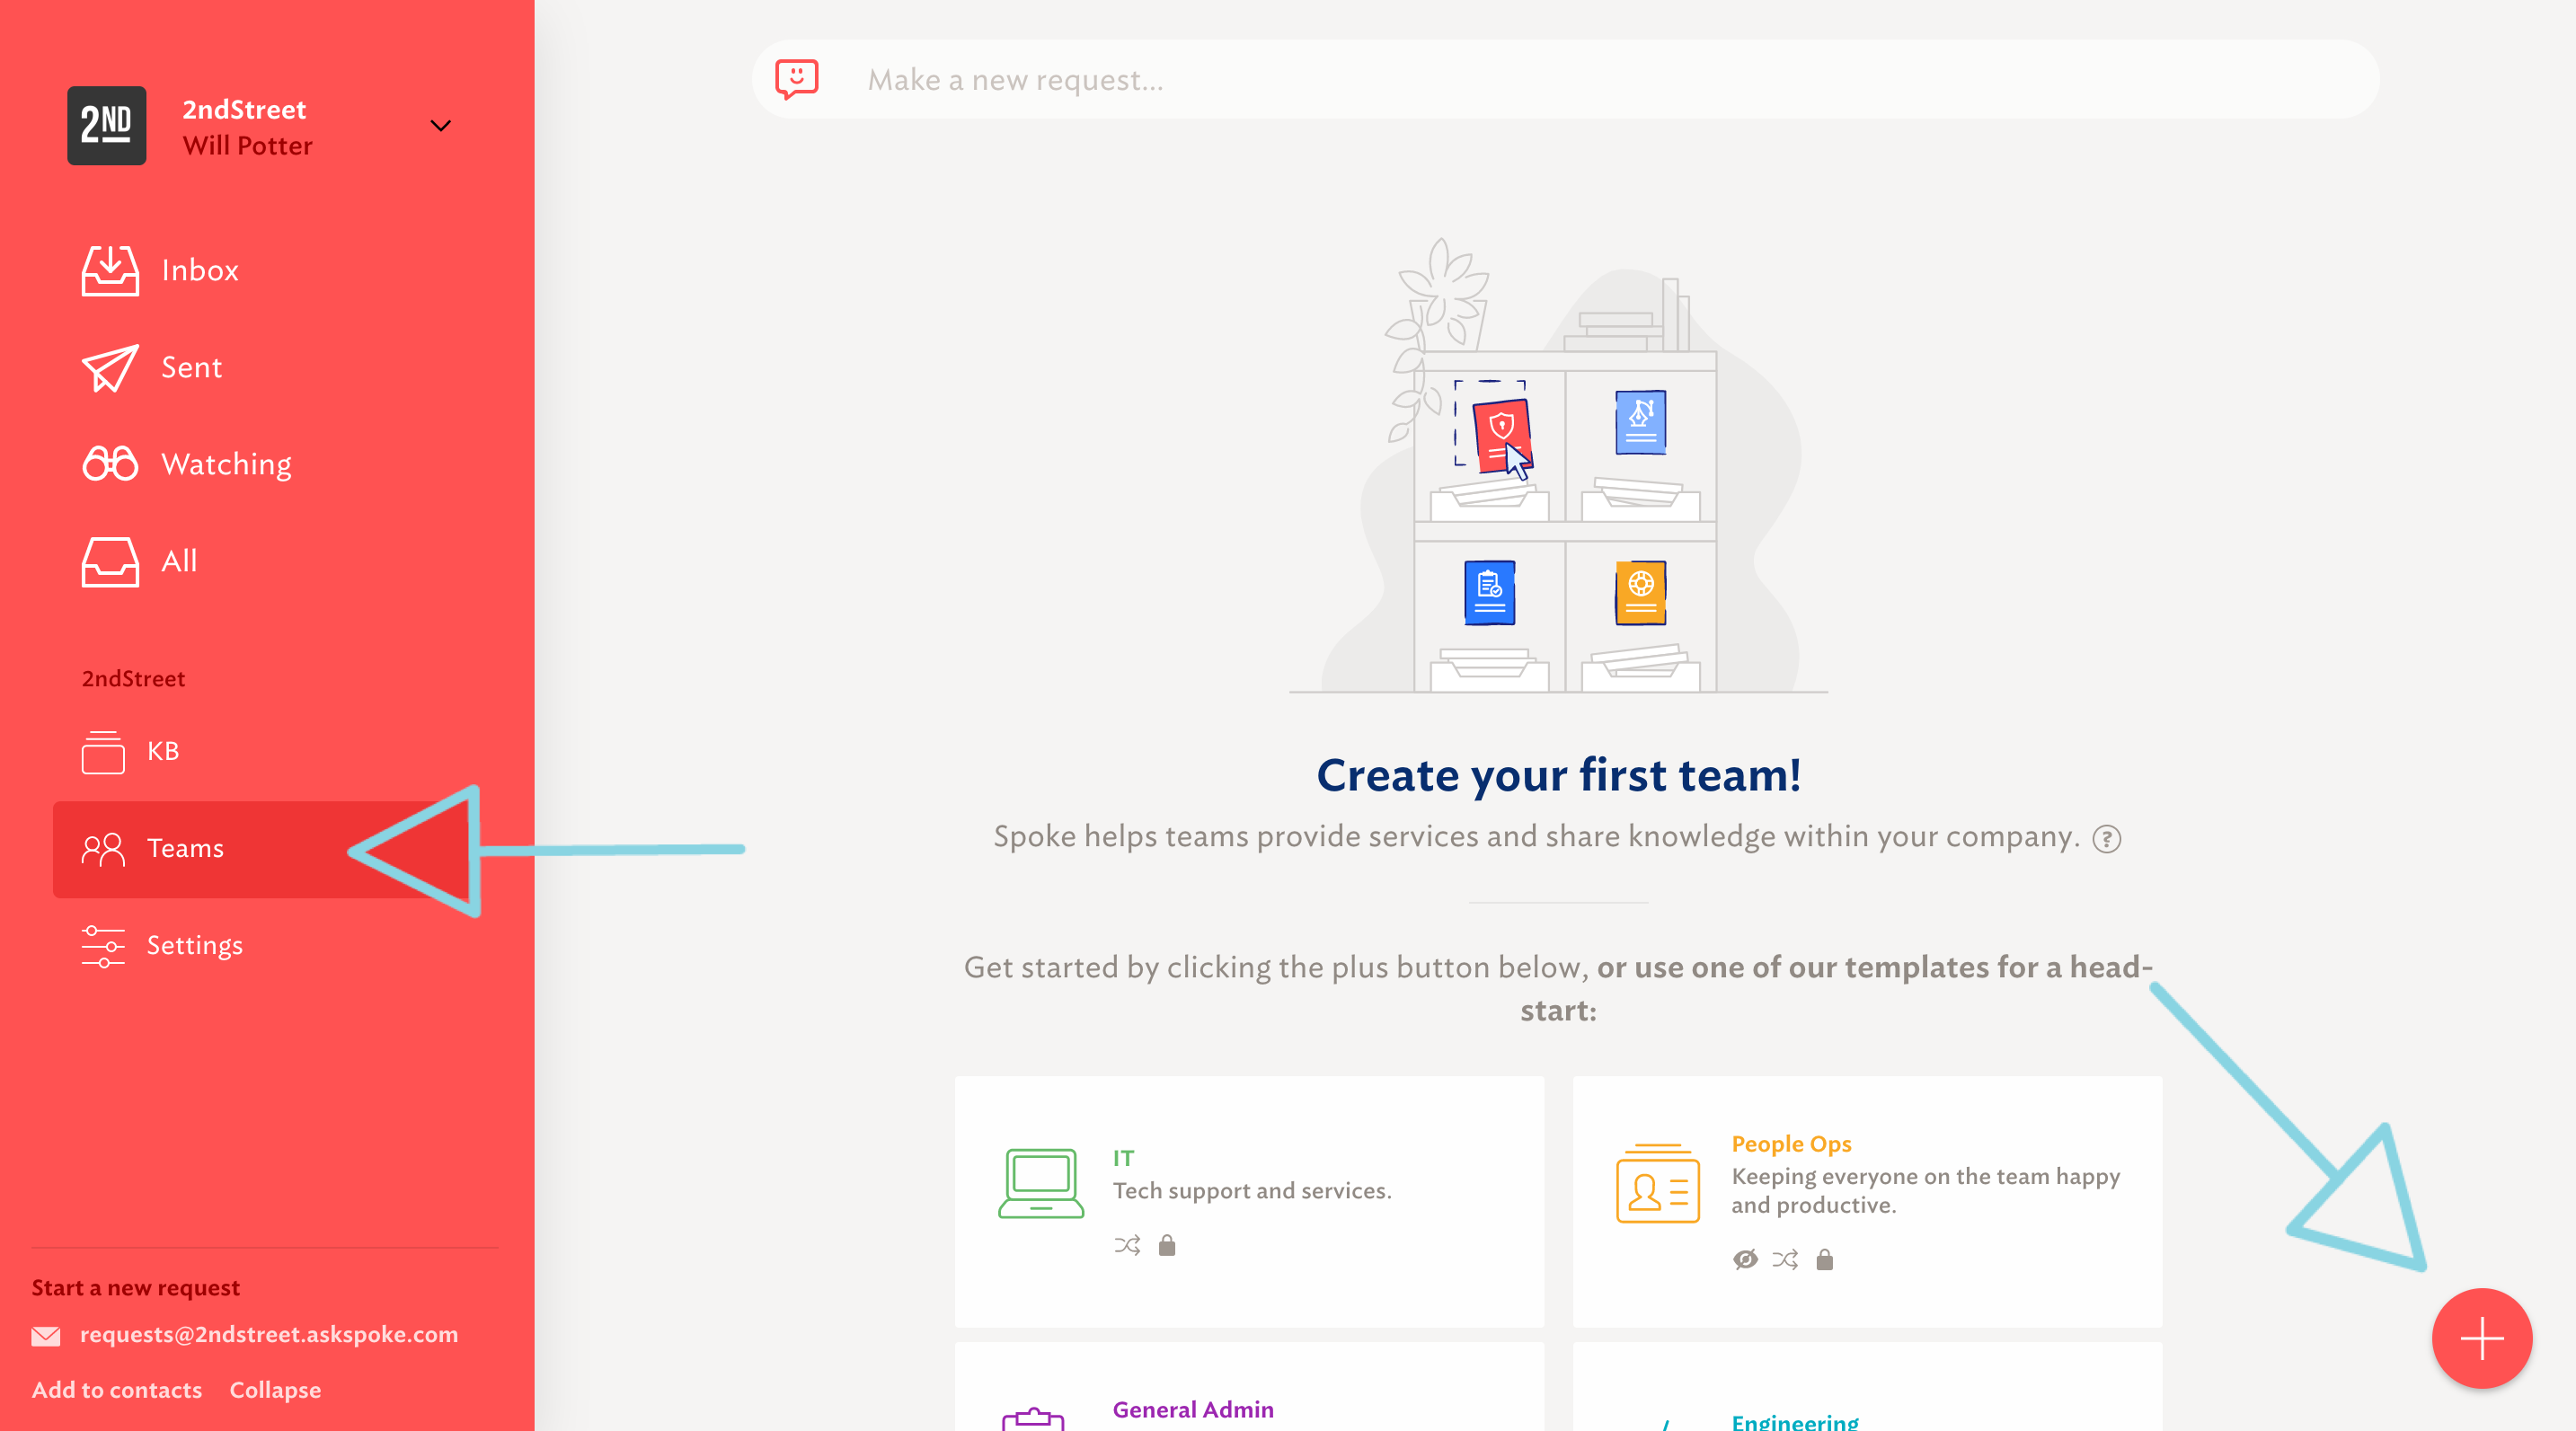 Create a new team or use one of Spoke's templates for a head-start